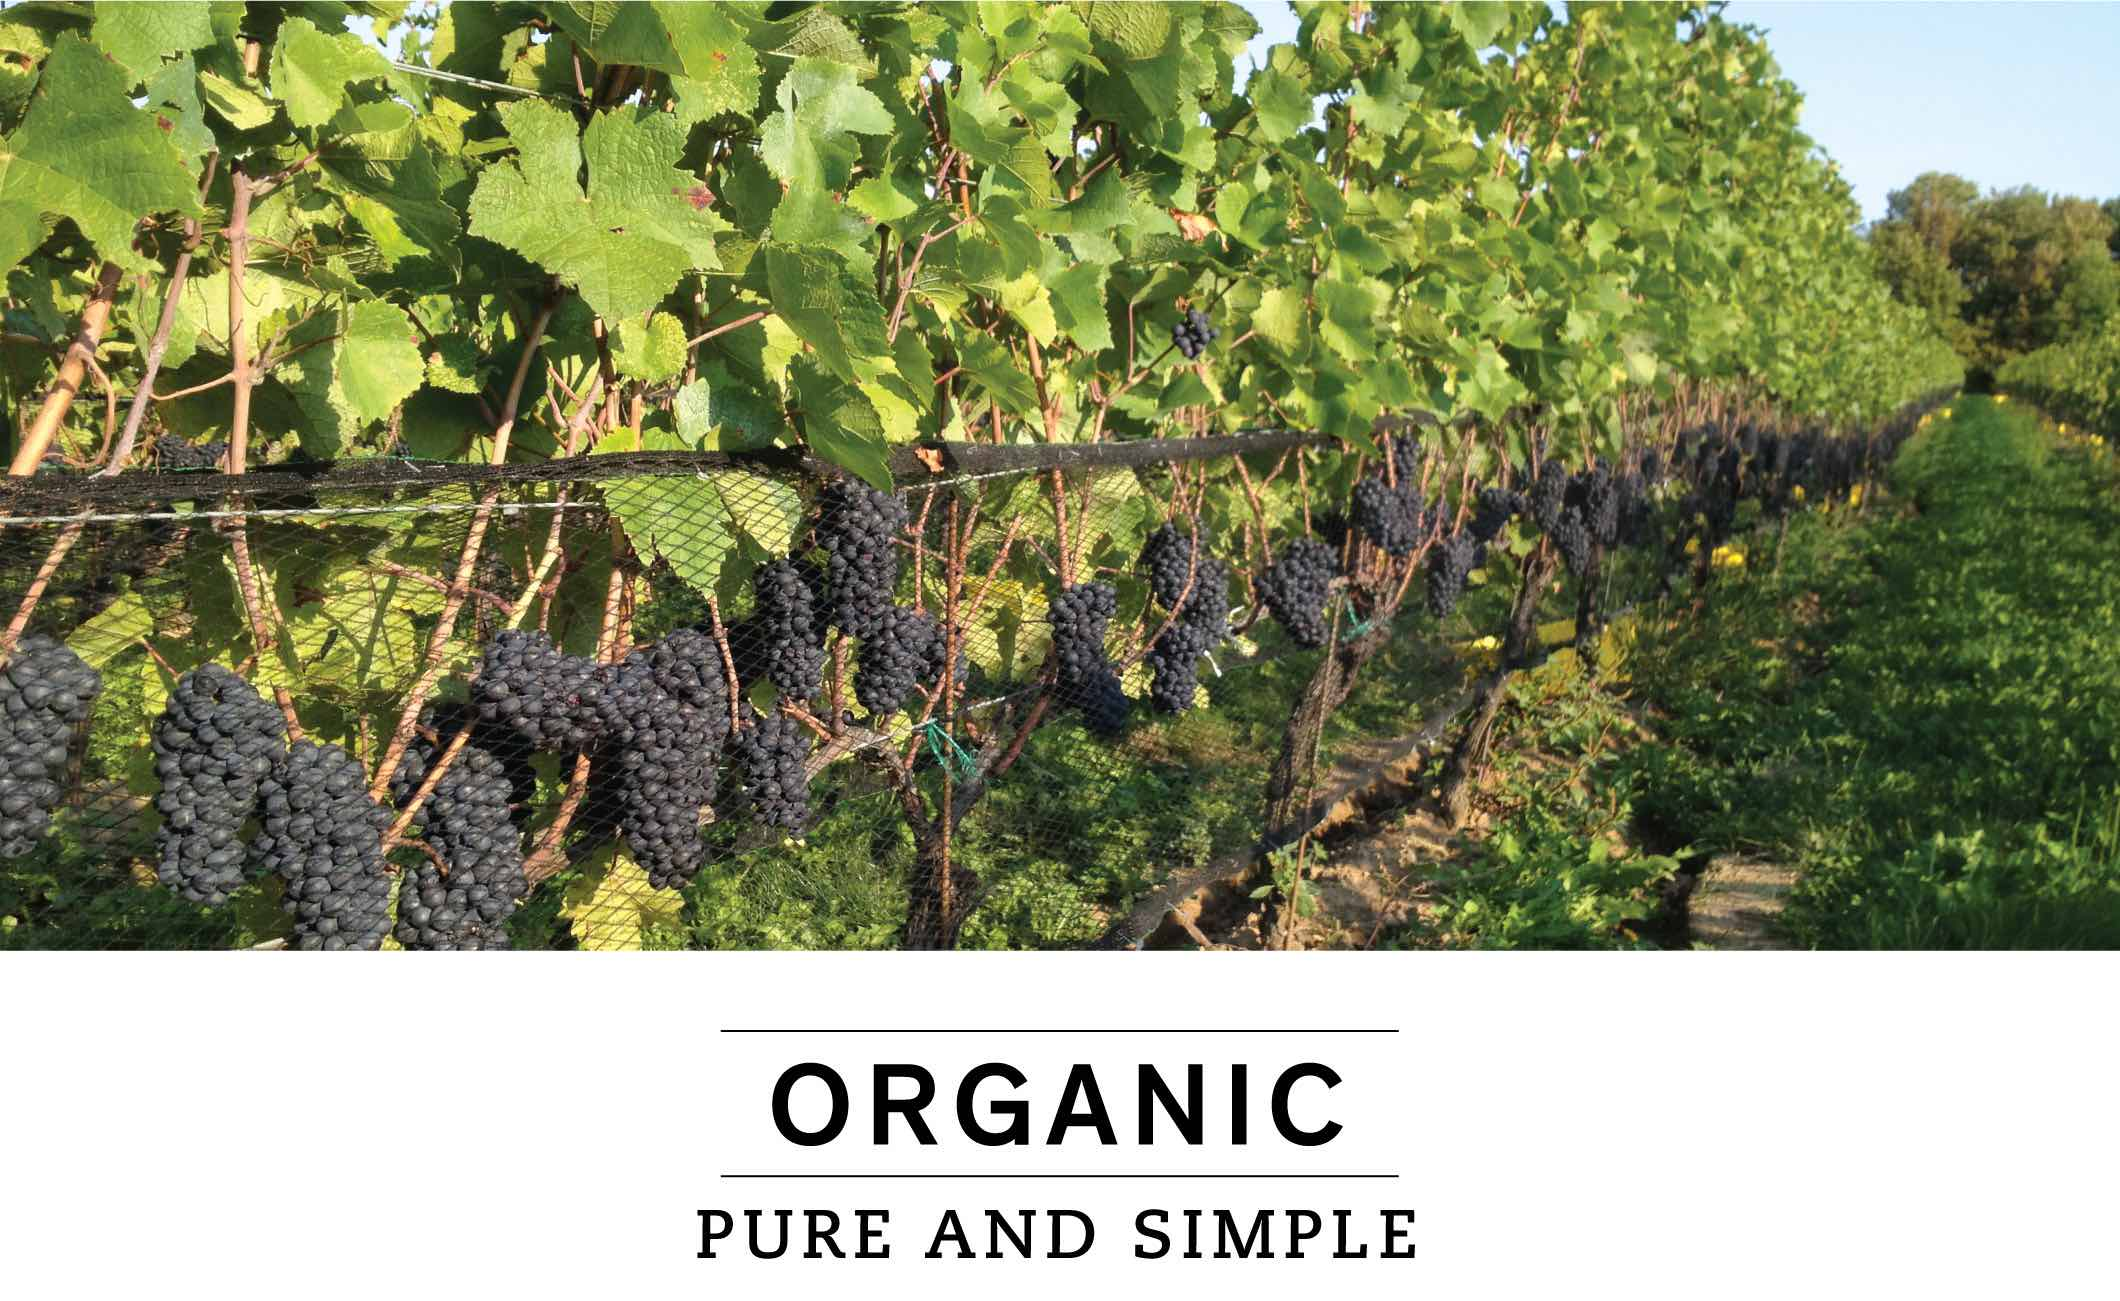 ORGANIC: PURE AND SIMPLE